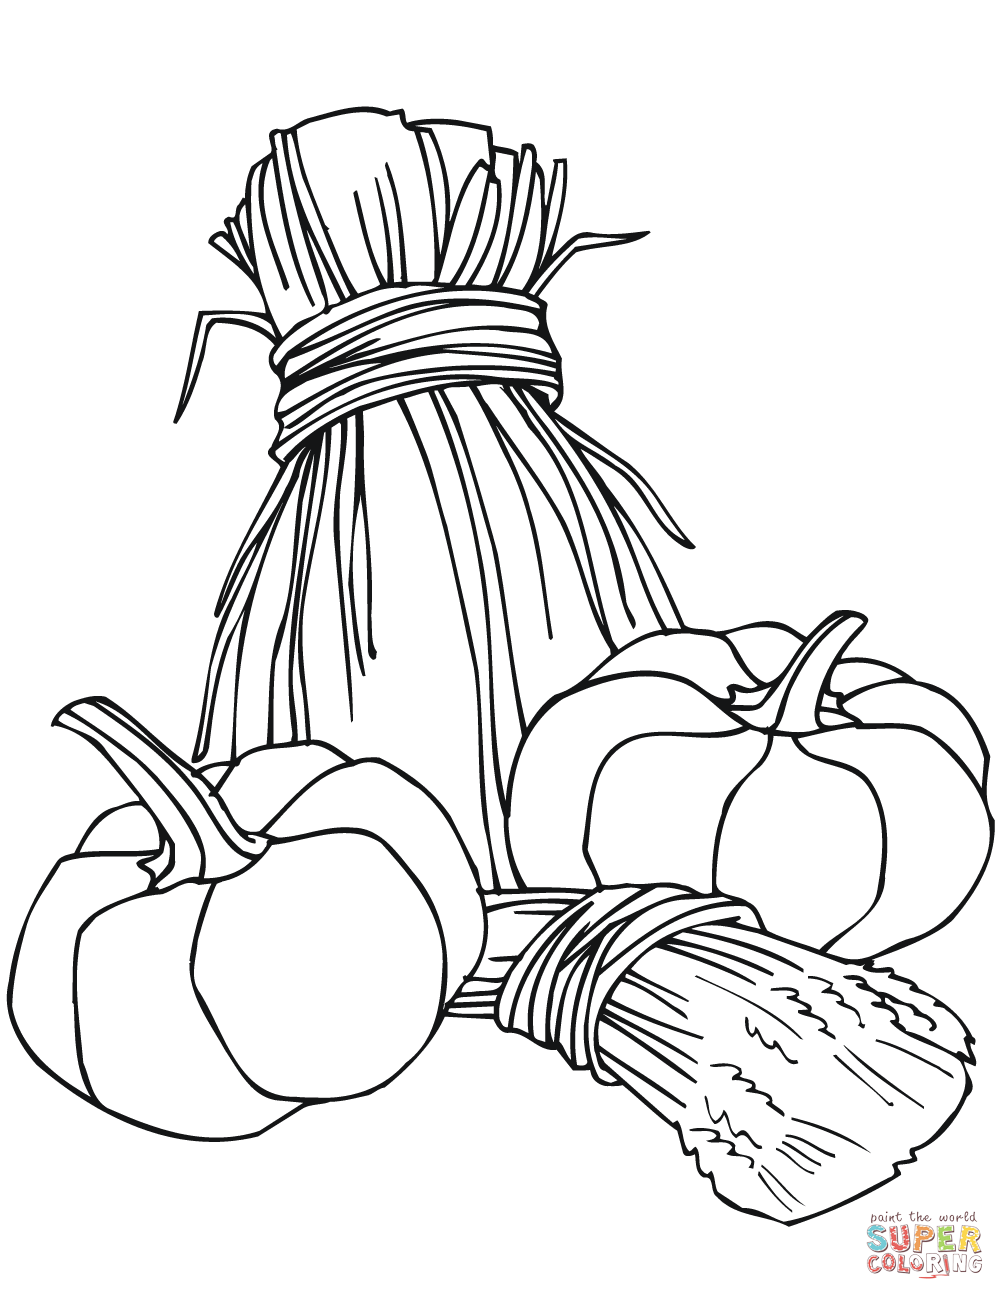 1005x1300 Pumpkins And Wheat Sheaves Coloring Page Free Printable Coloring